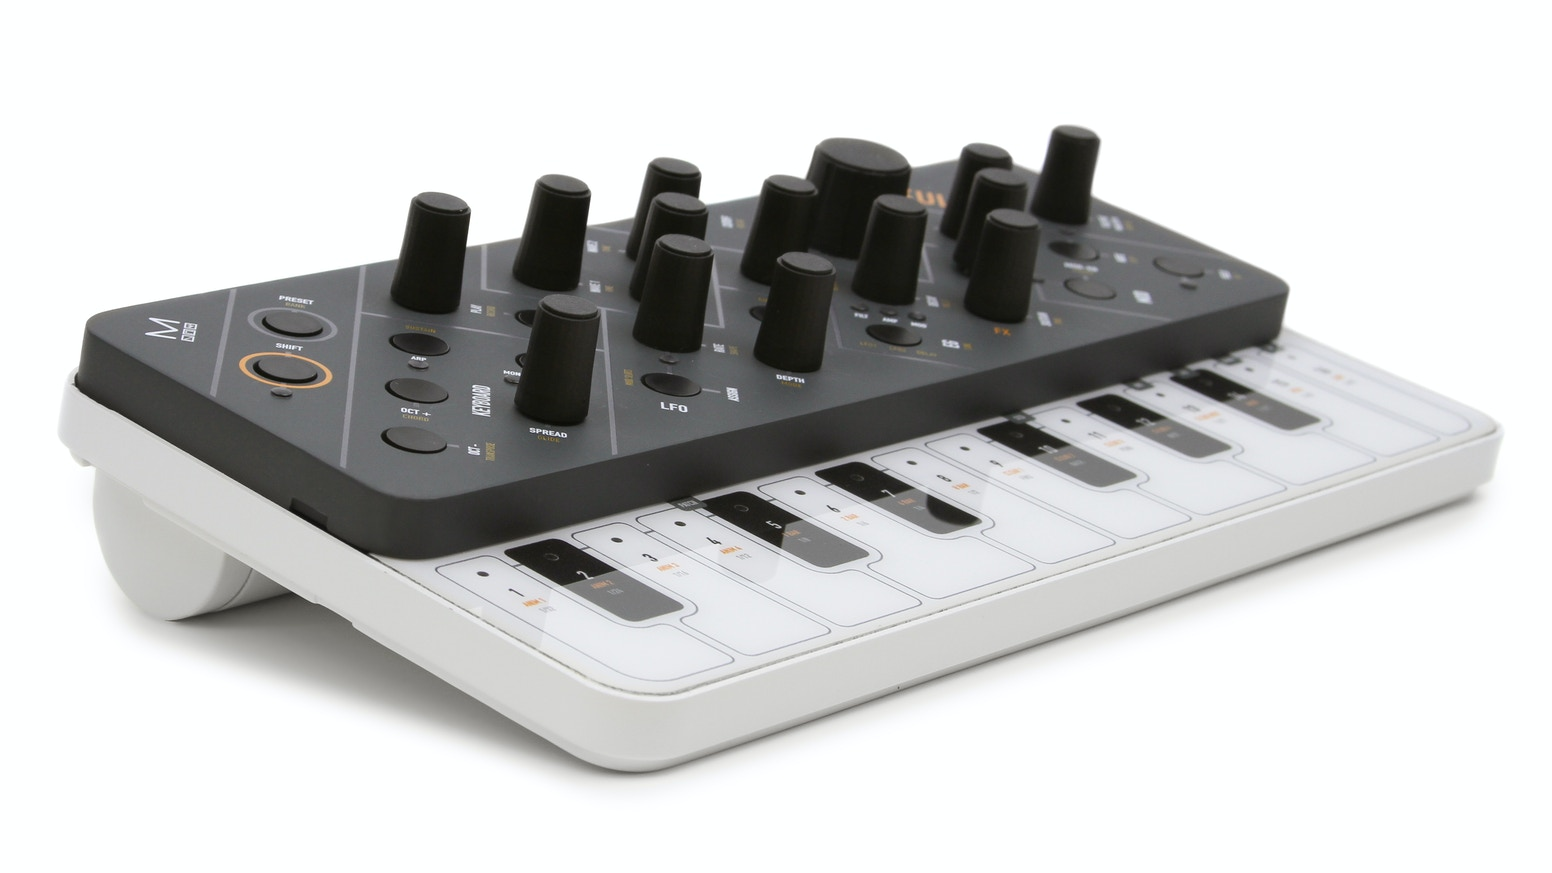 SKULPT synthesiser, a 4 voice, 32 oscillator polyphonic portable synth that proves you don't have to be big to sound BIG.